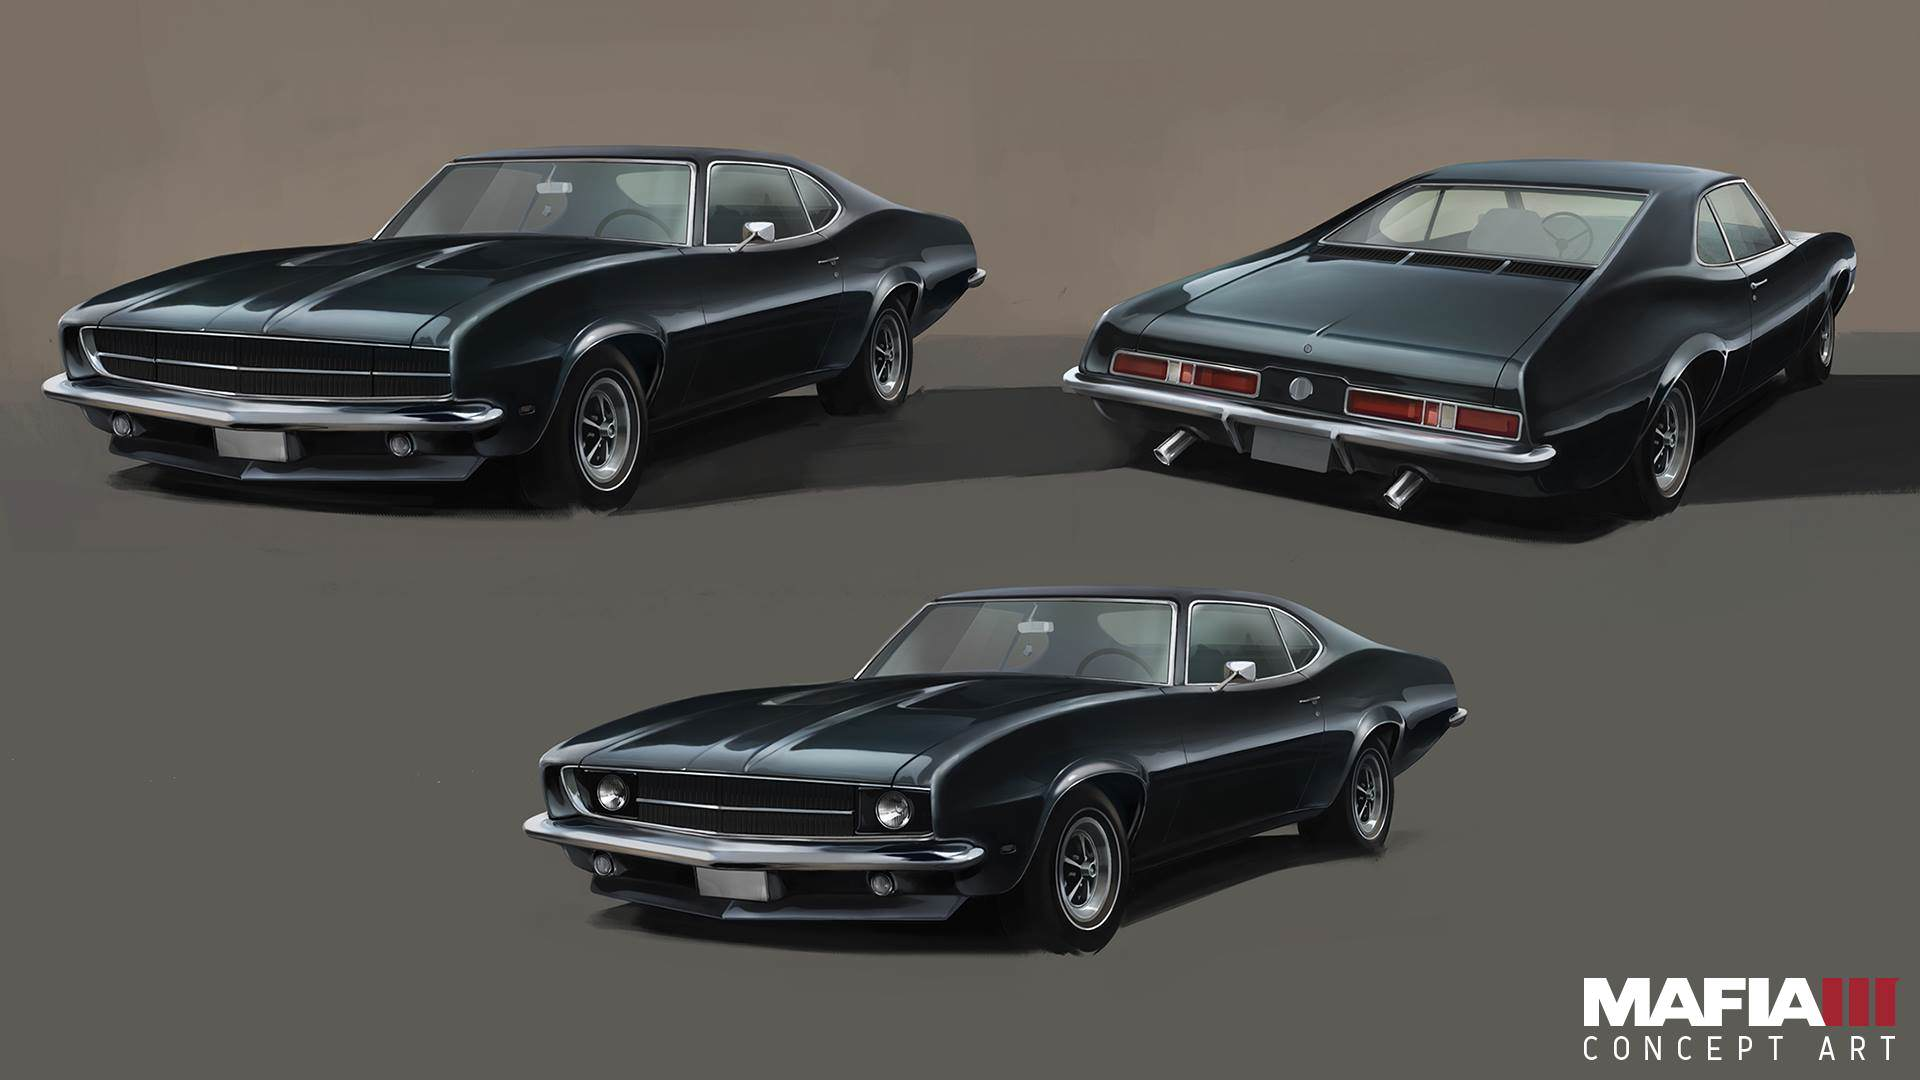 mafia3 lincolns muscle car artwork Check Out Every Awesome Piece Of Mafia 3 Concept Art Released